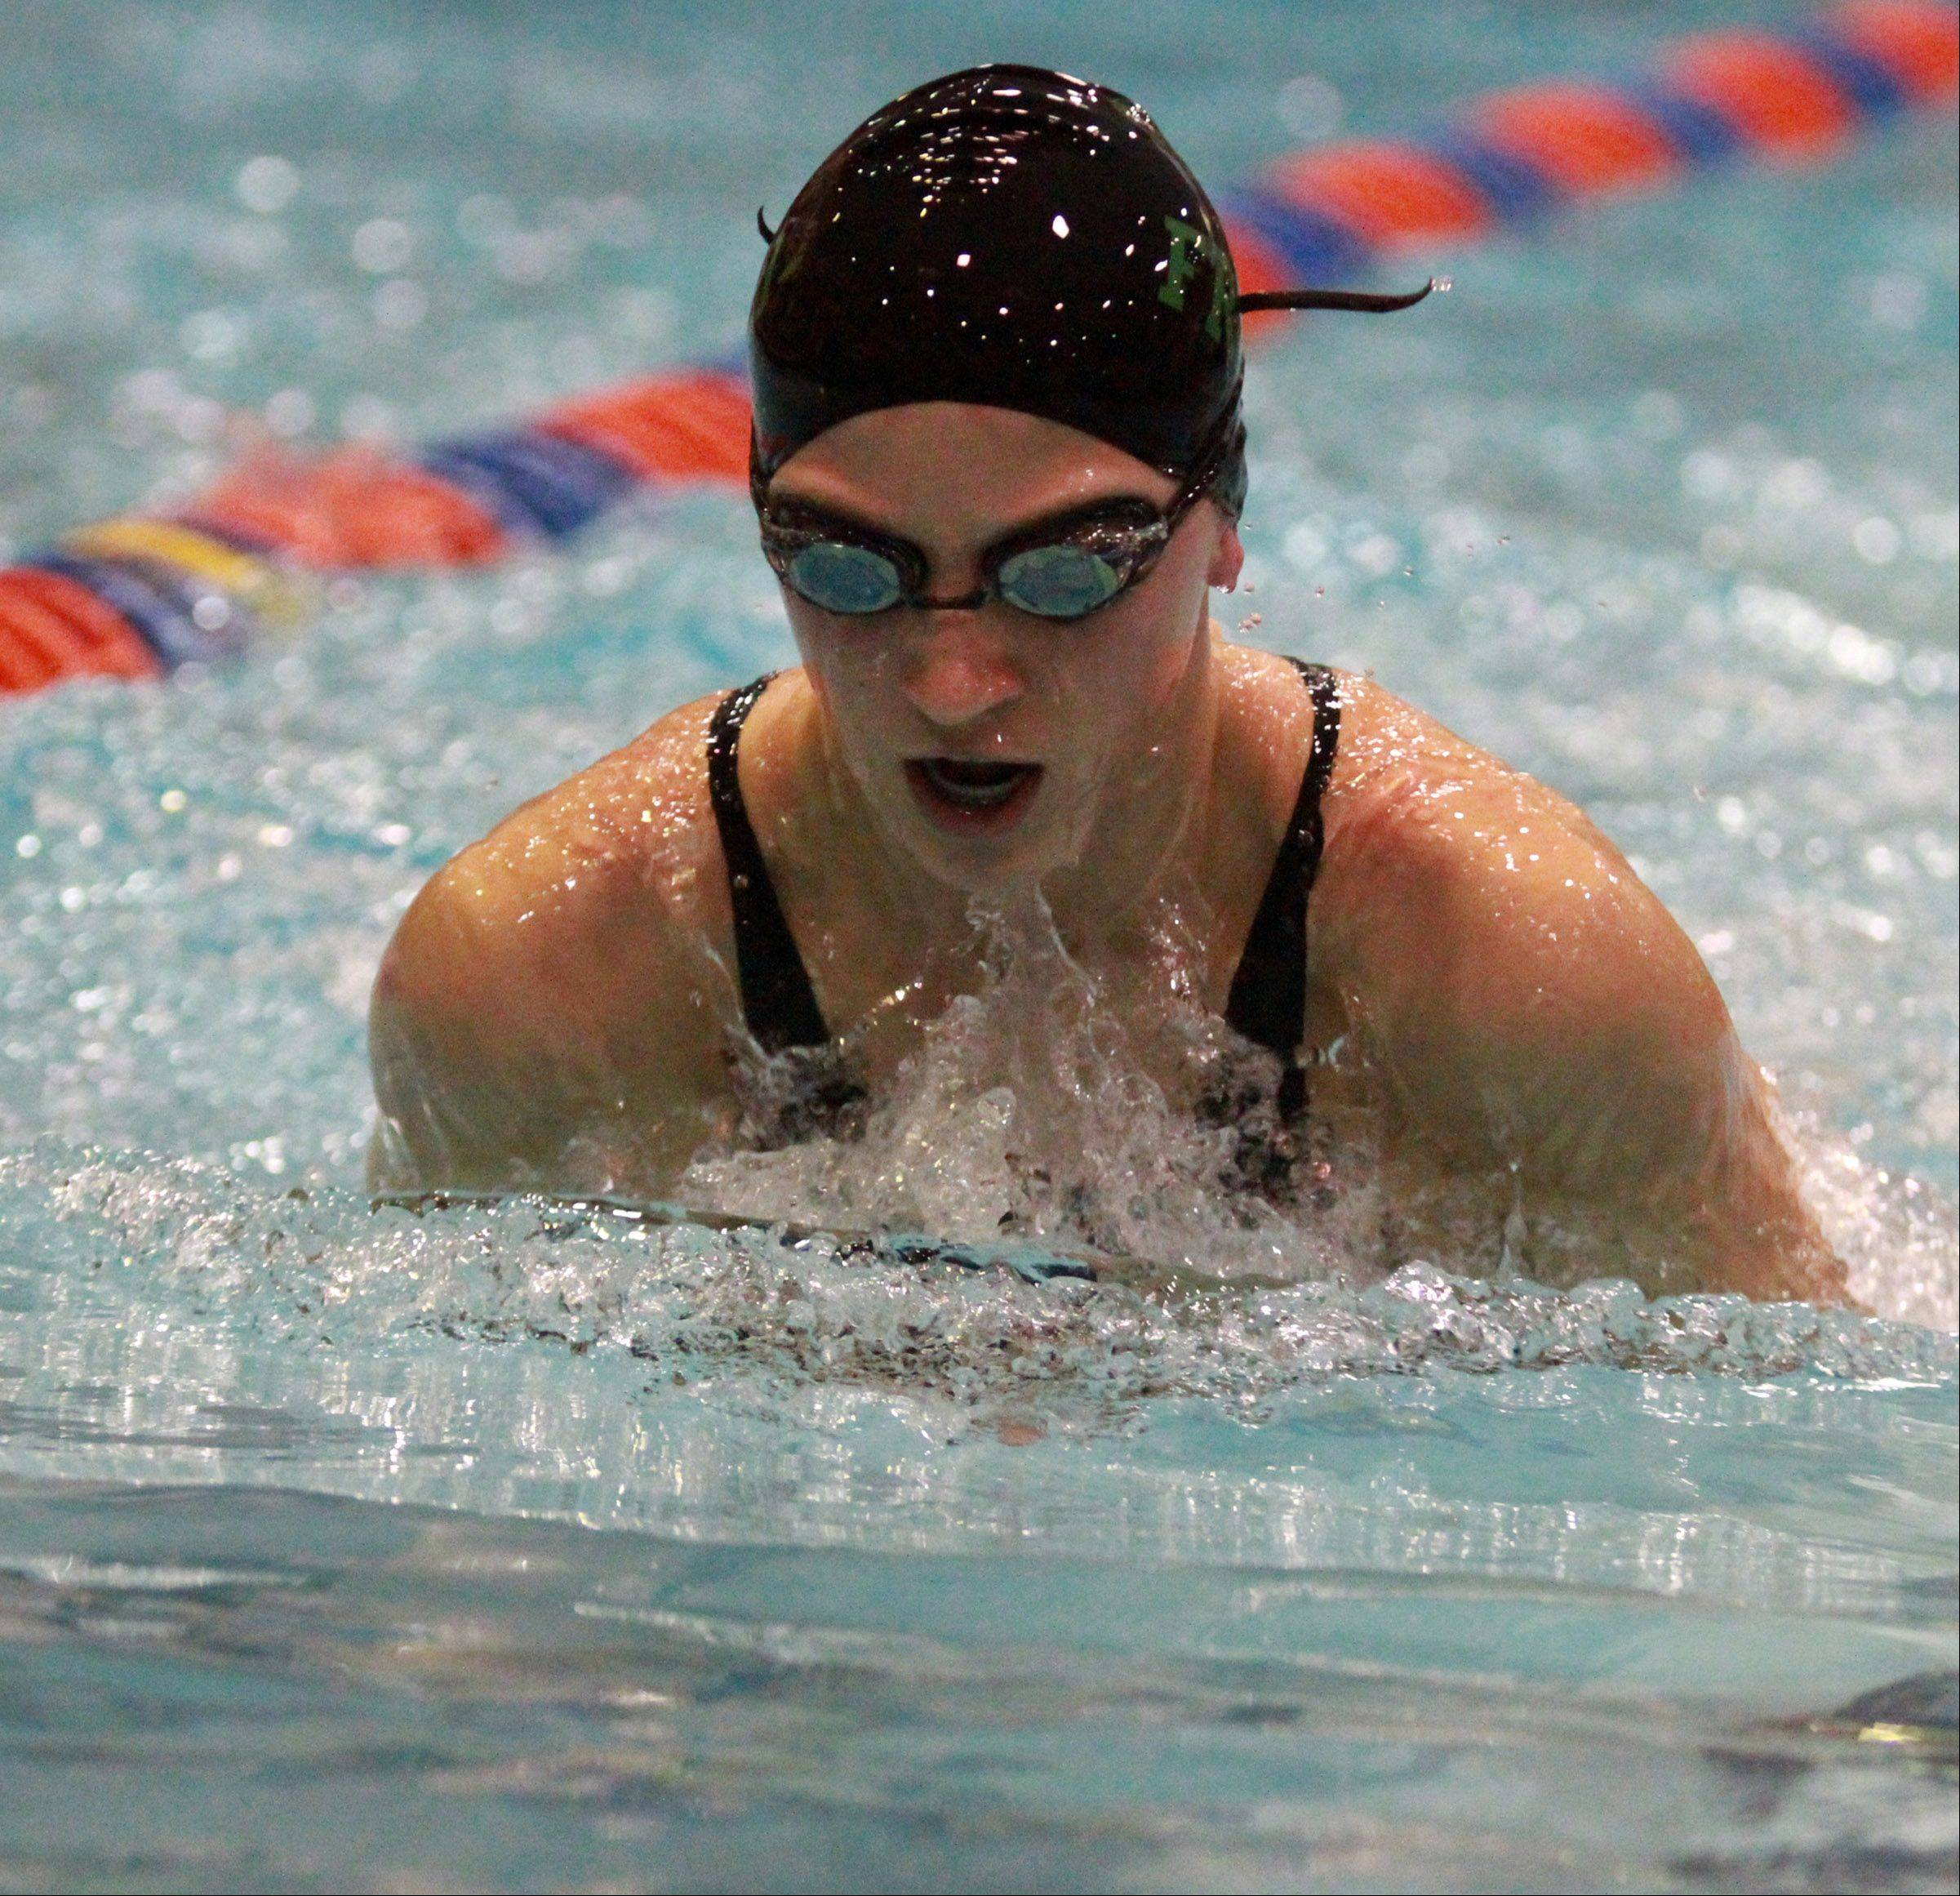 Leah Bloodgood swims the second leg of the 200-yard medley relay for Stevenson, which finished 11th in the event at state preliminaries in Evanston on Friday.